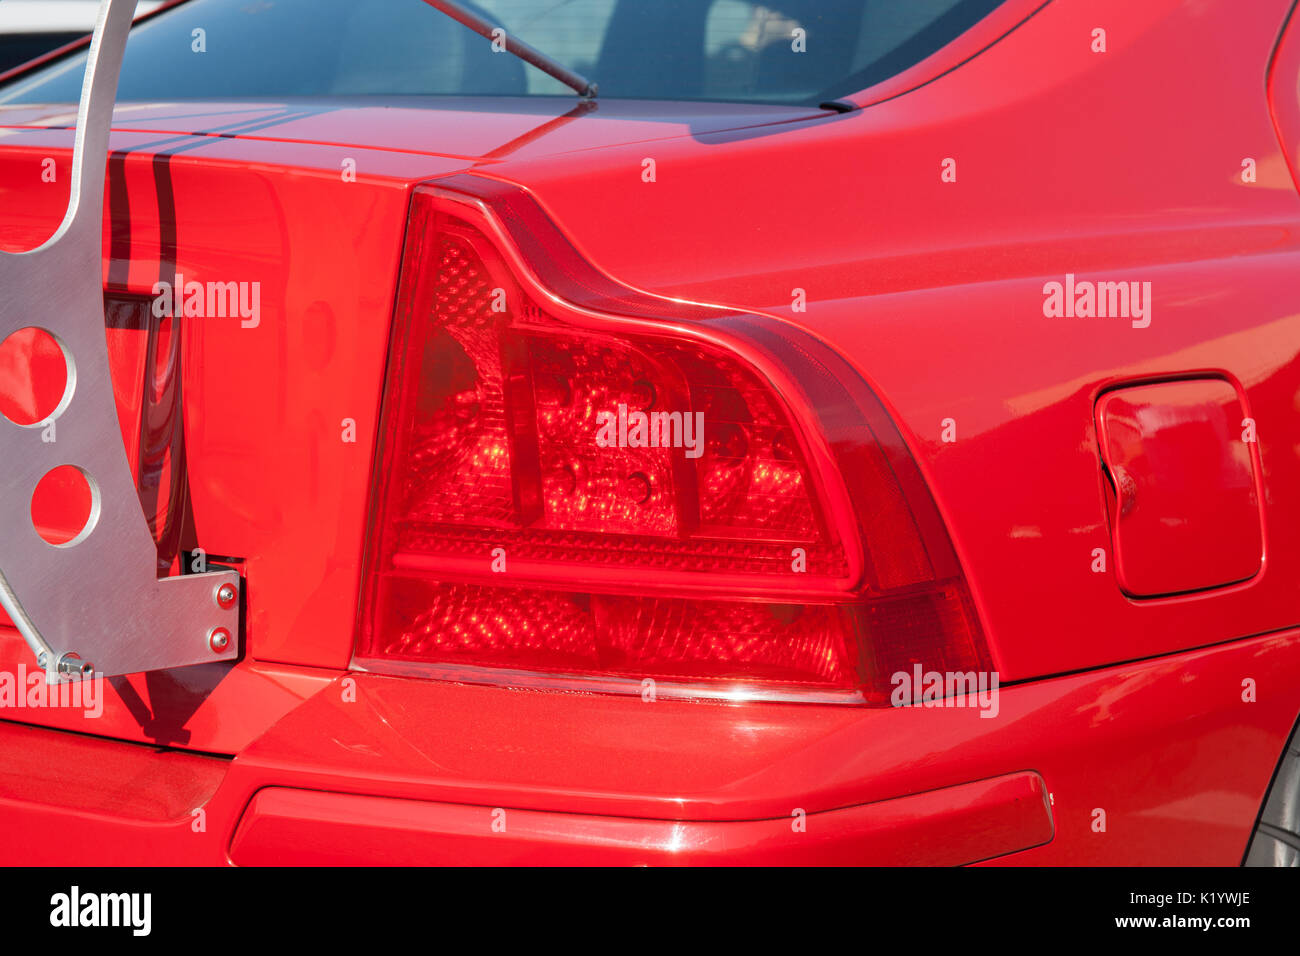 Red rear light of a red sports car. White metal support of a back spoiler. Beautiful automotive technology. Stylish design. - Stock Image